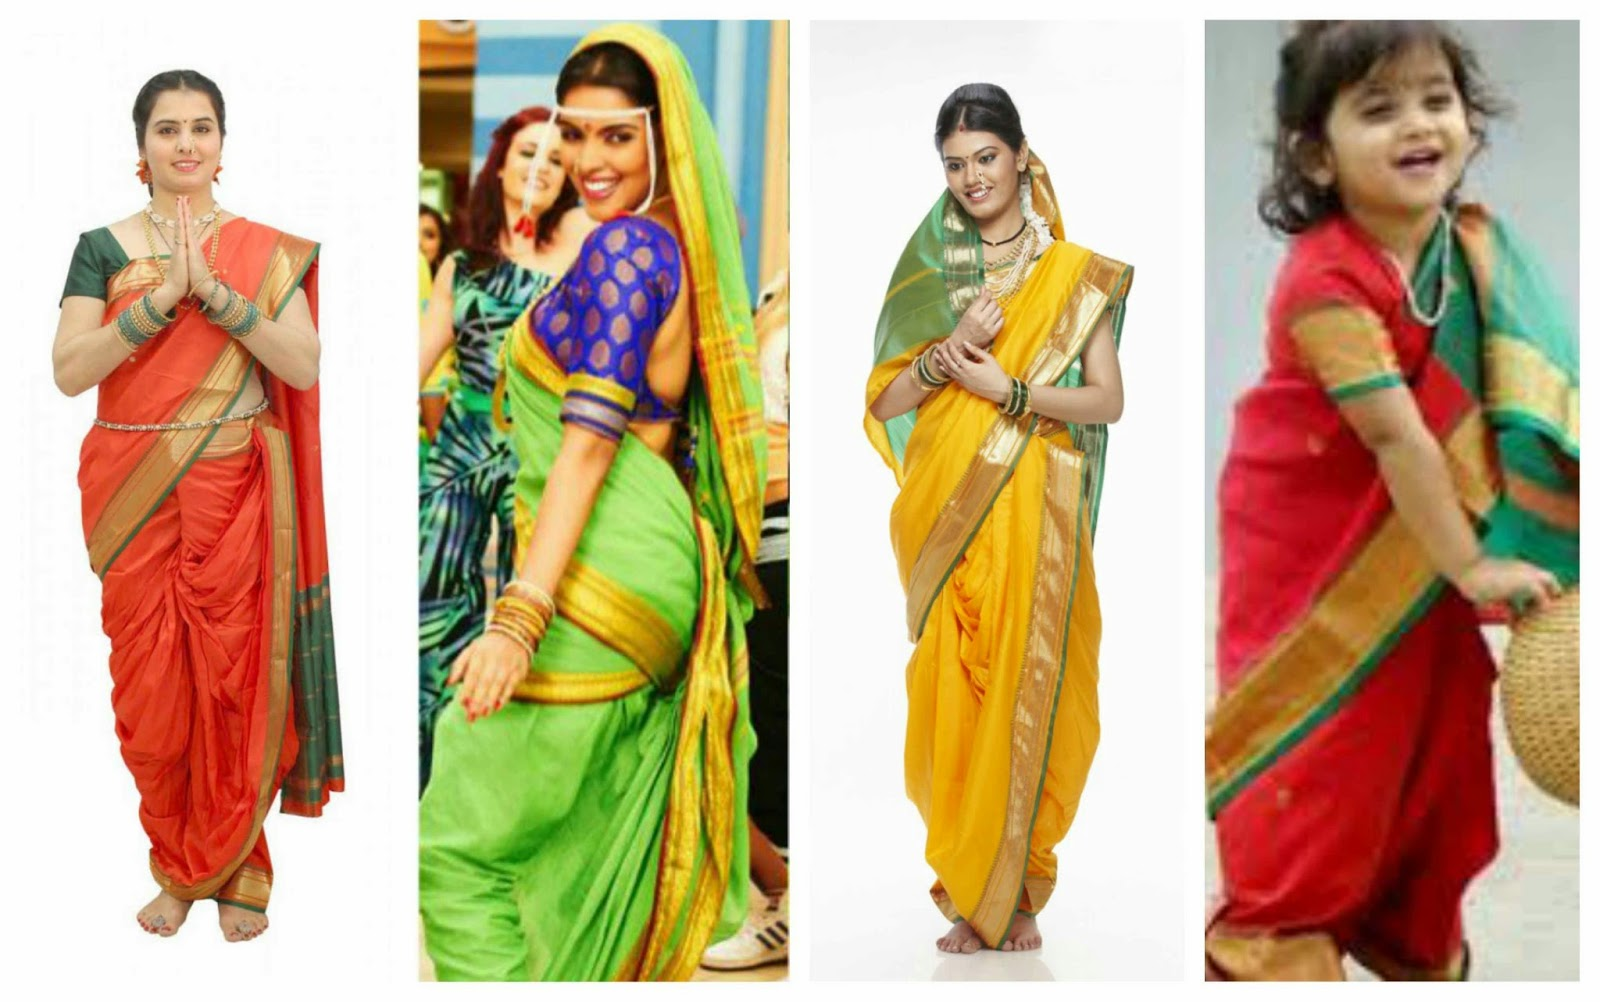 Unique 9 traditional indian dresses for women from different states source altavistaventures Image collections